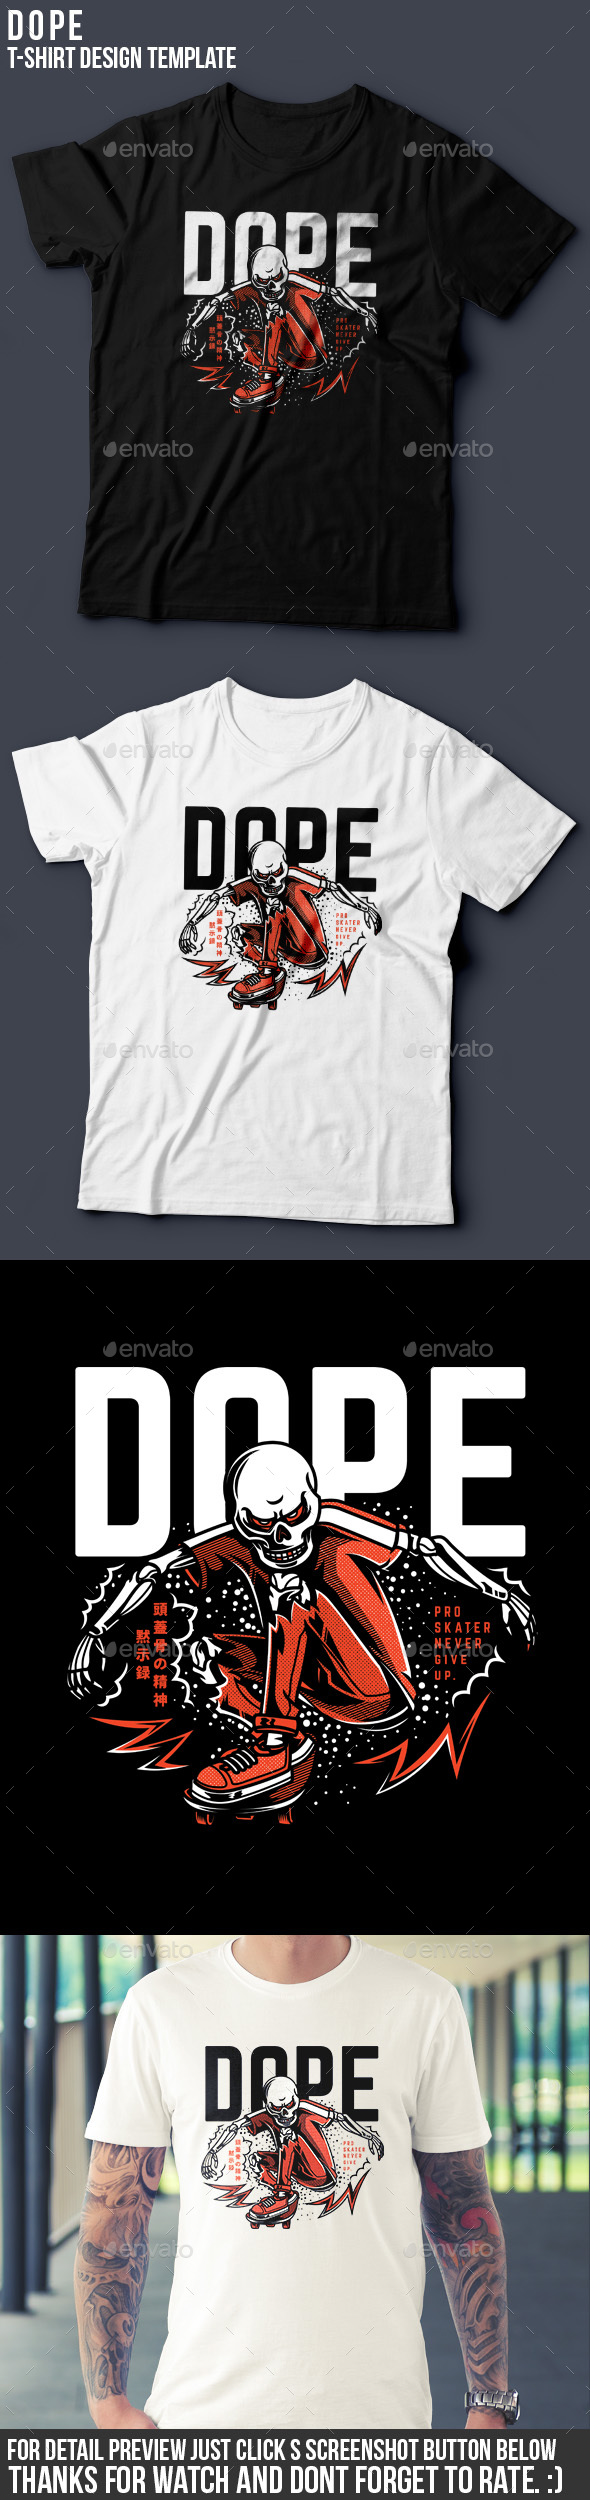 DOPE T-Shirt Design - Grunge Designs